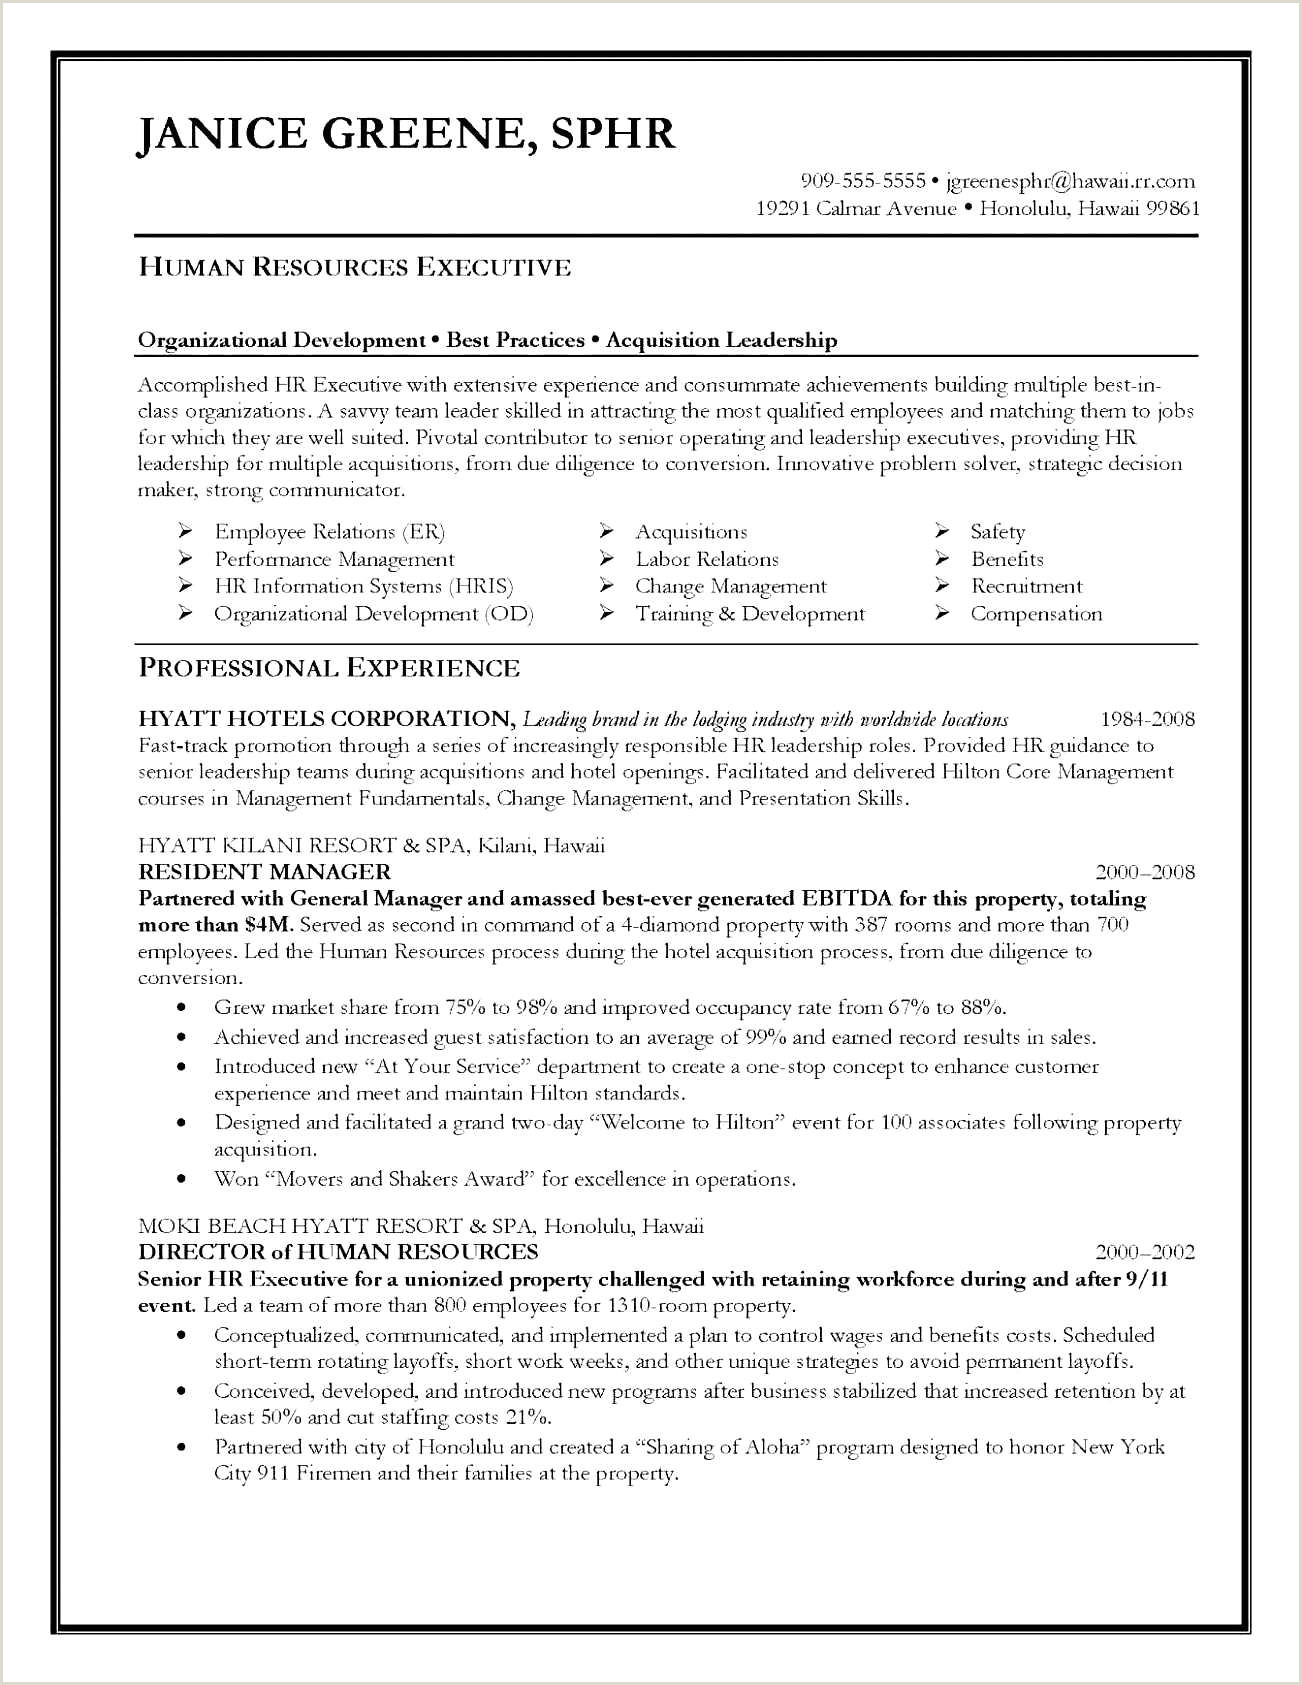 Personal Branding Statement Resume Examples Leadership Resume Statements From Mission Statement Resume